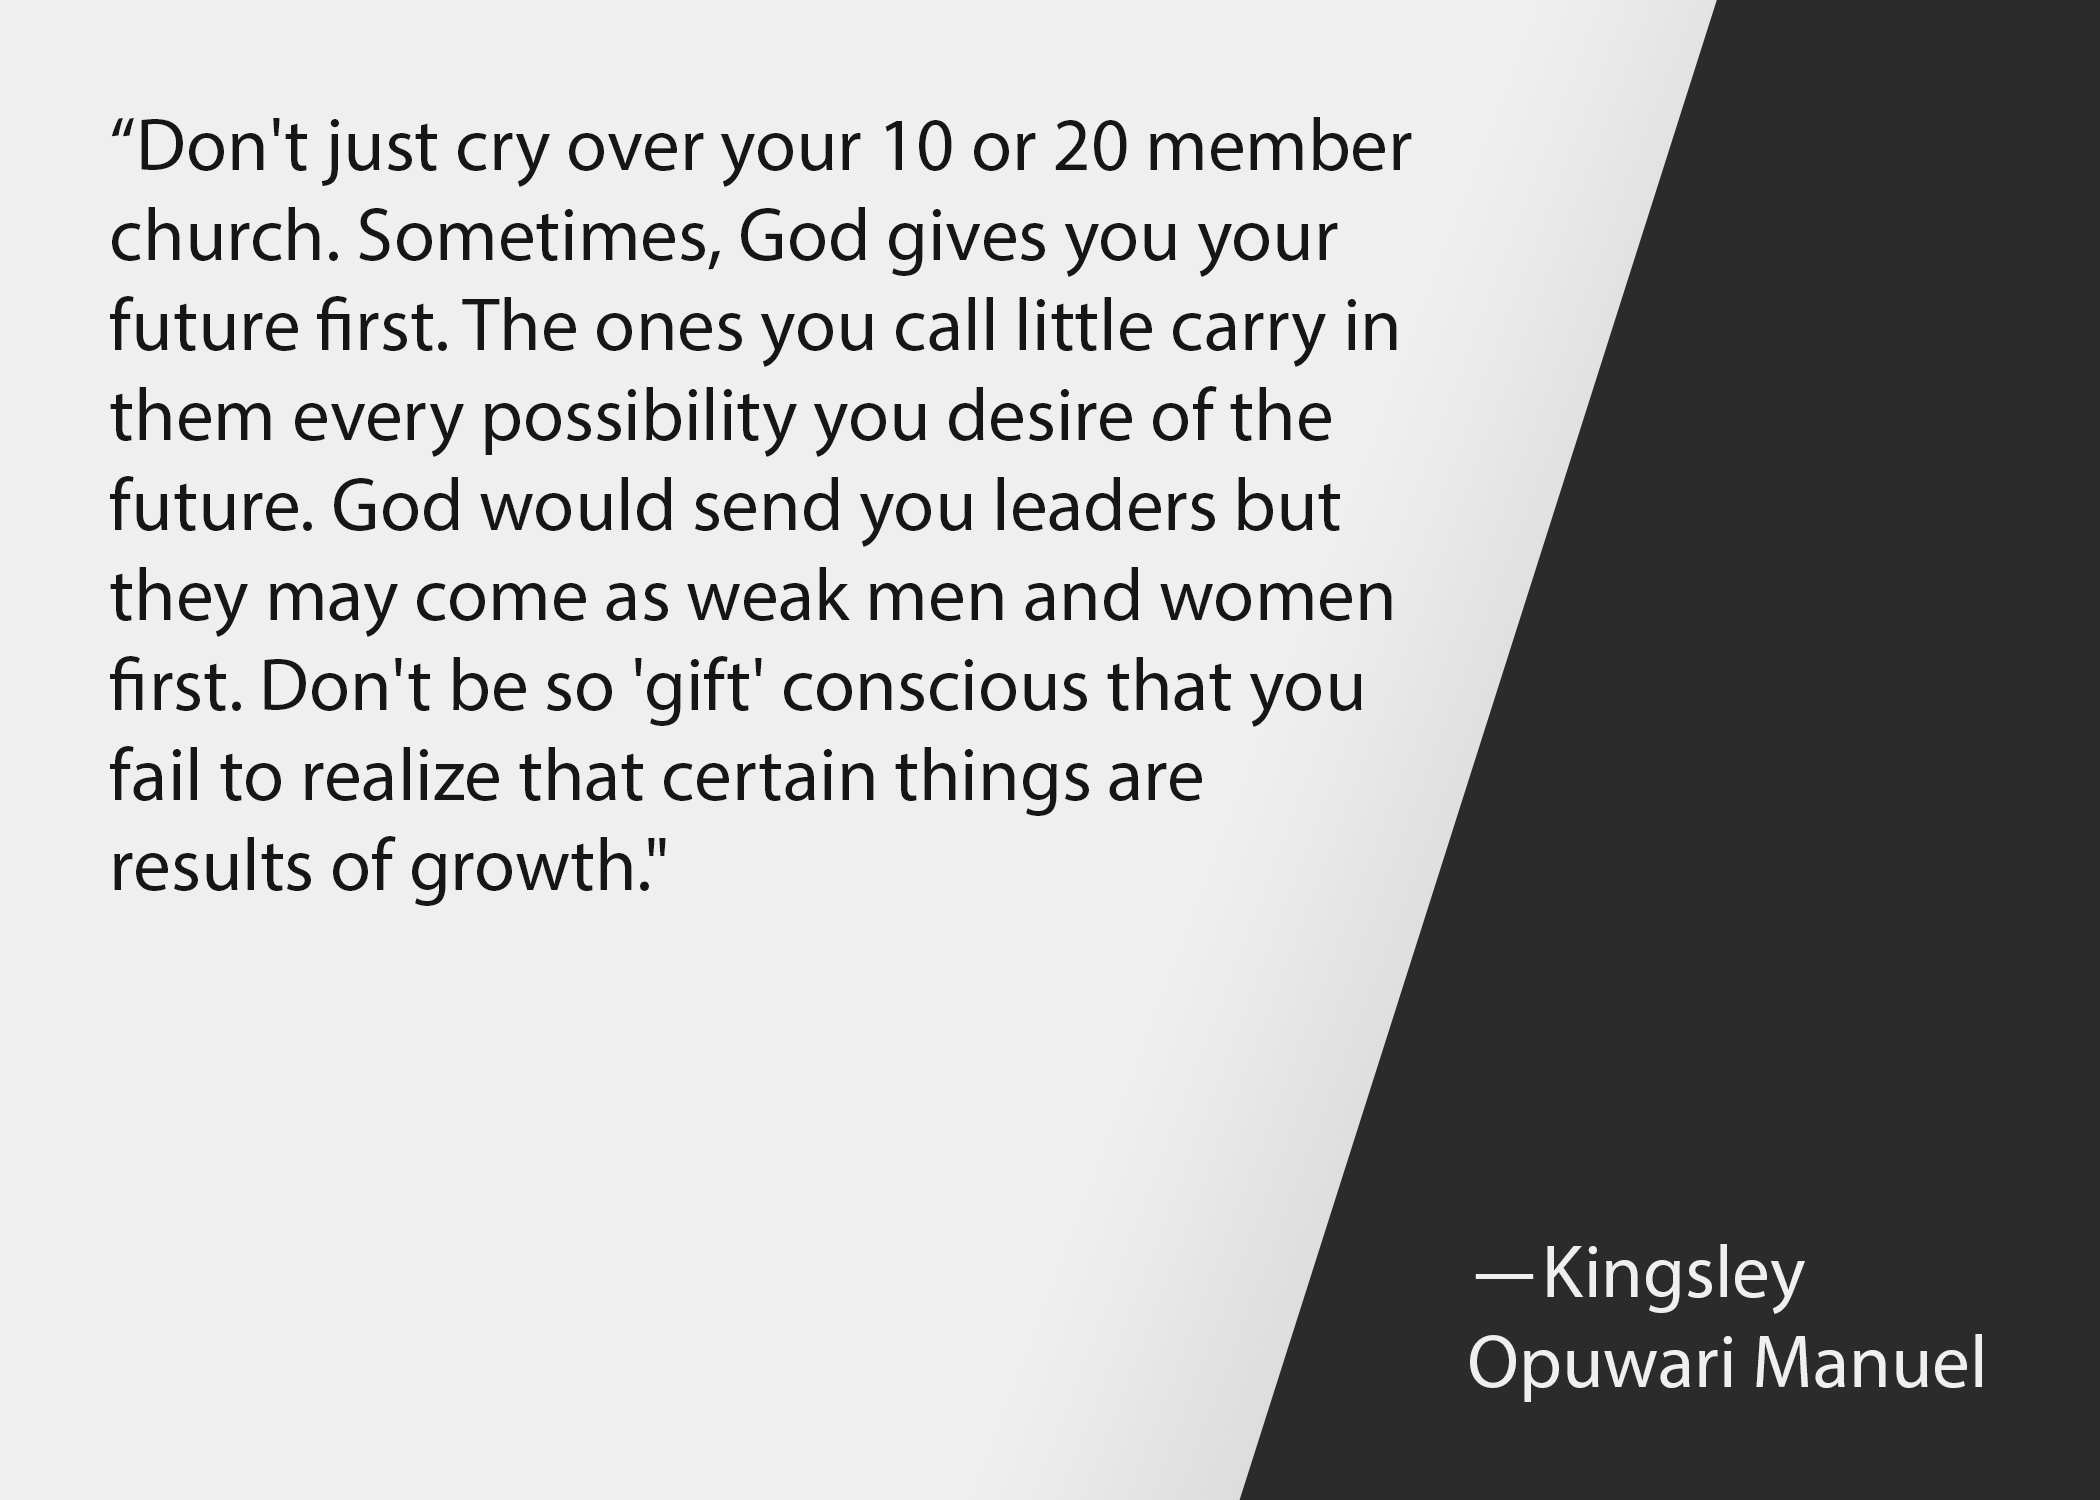 Church leadership quotes: Kingsley Opuwari Manuel quote